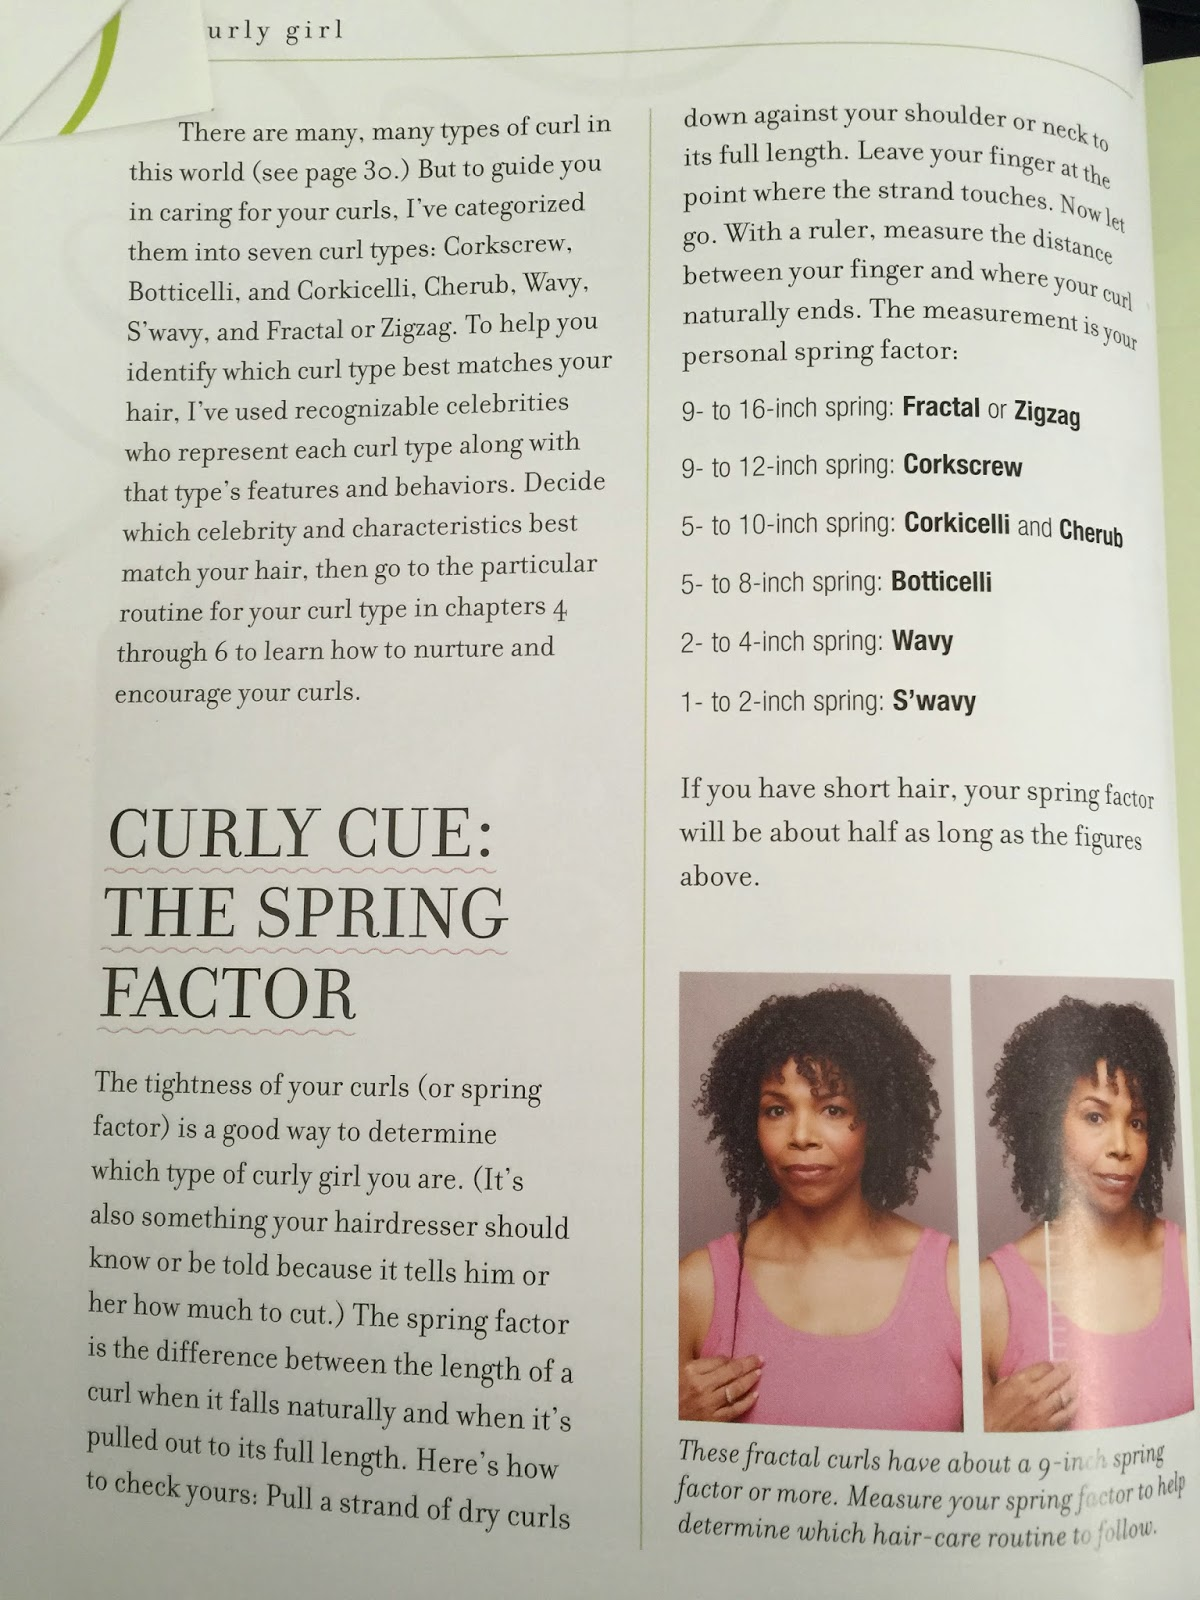 curly-girl-handbook-spring-factor